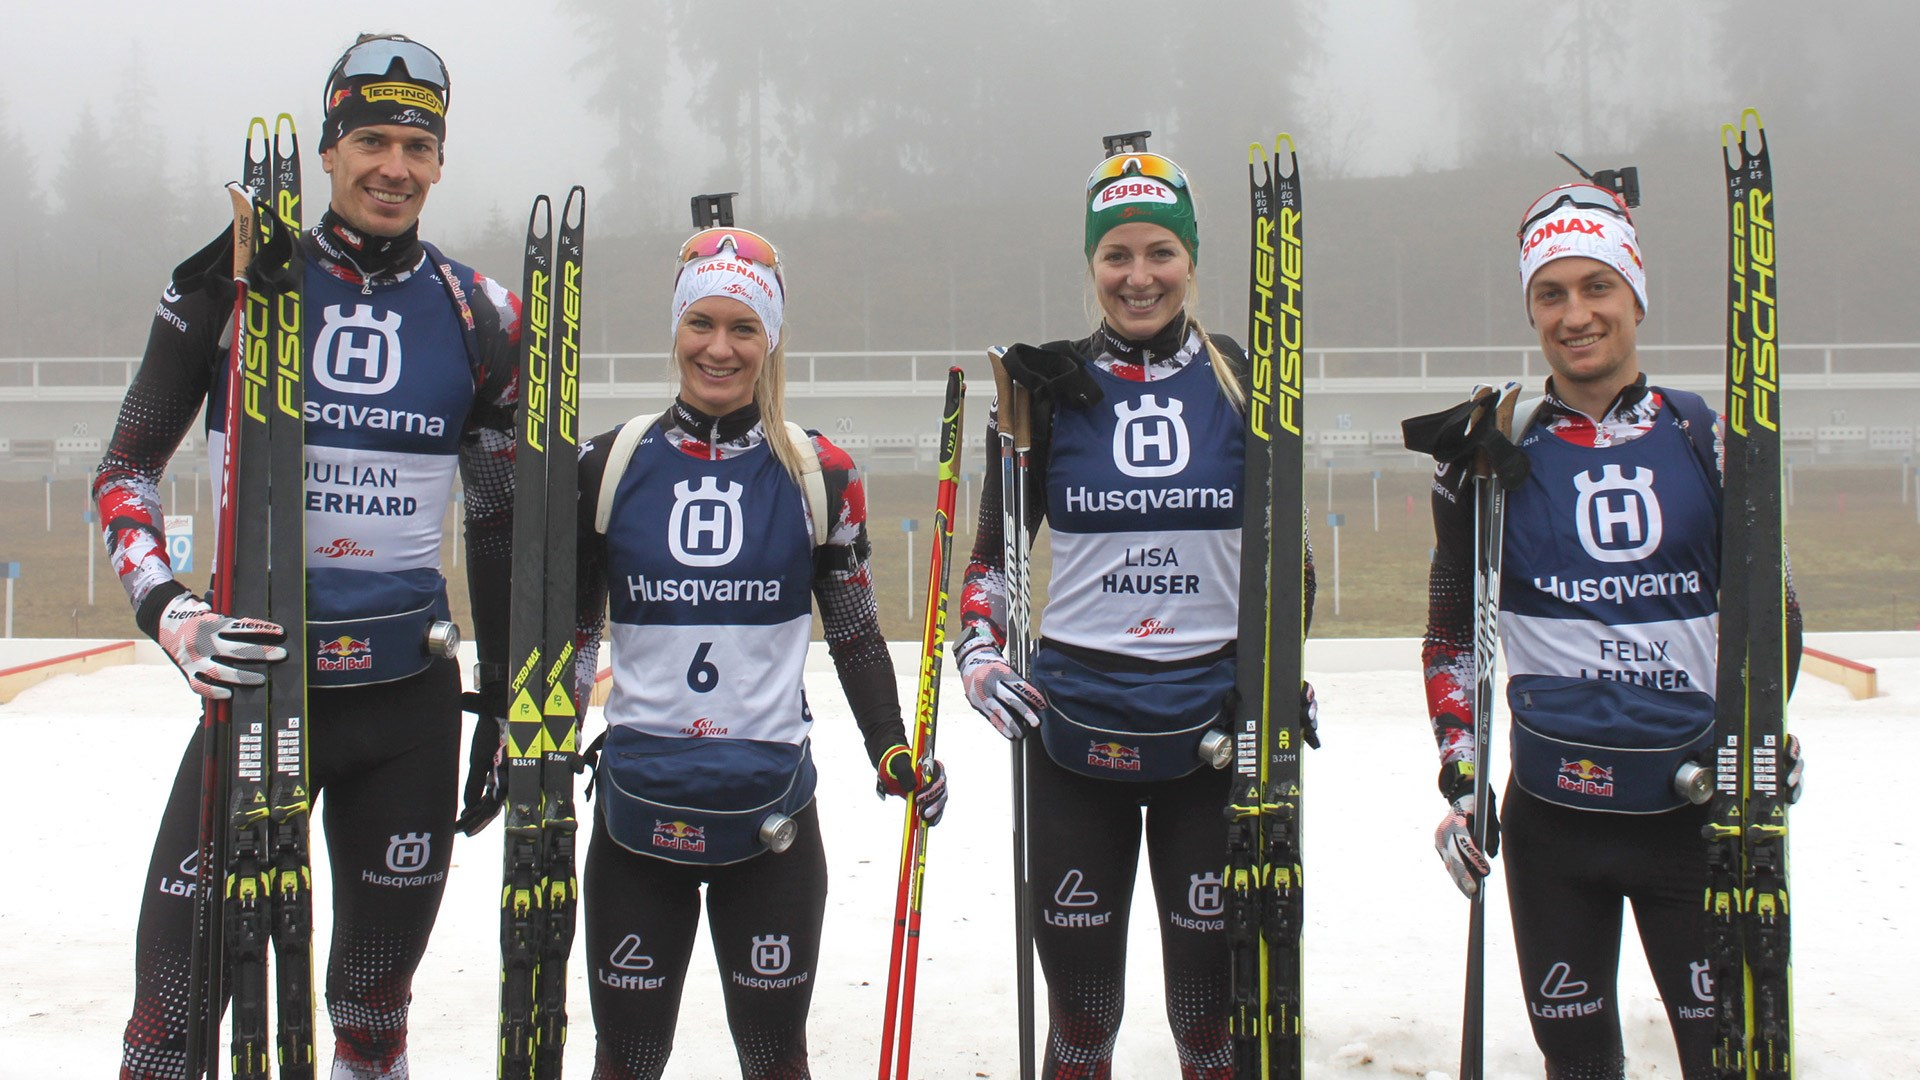 biathlon, Obertilliach, Felix Leitner, Lisa Hauser, Julian Eberhard